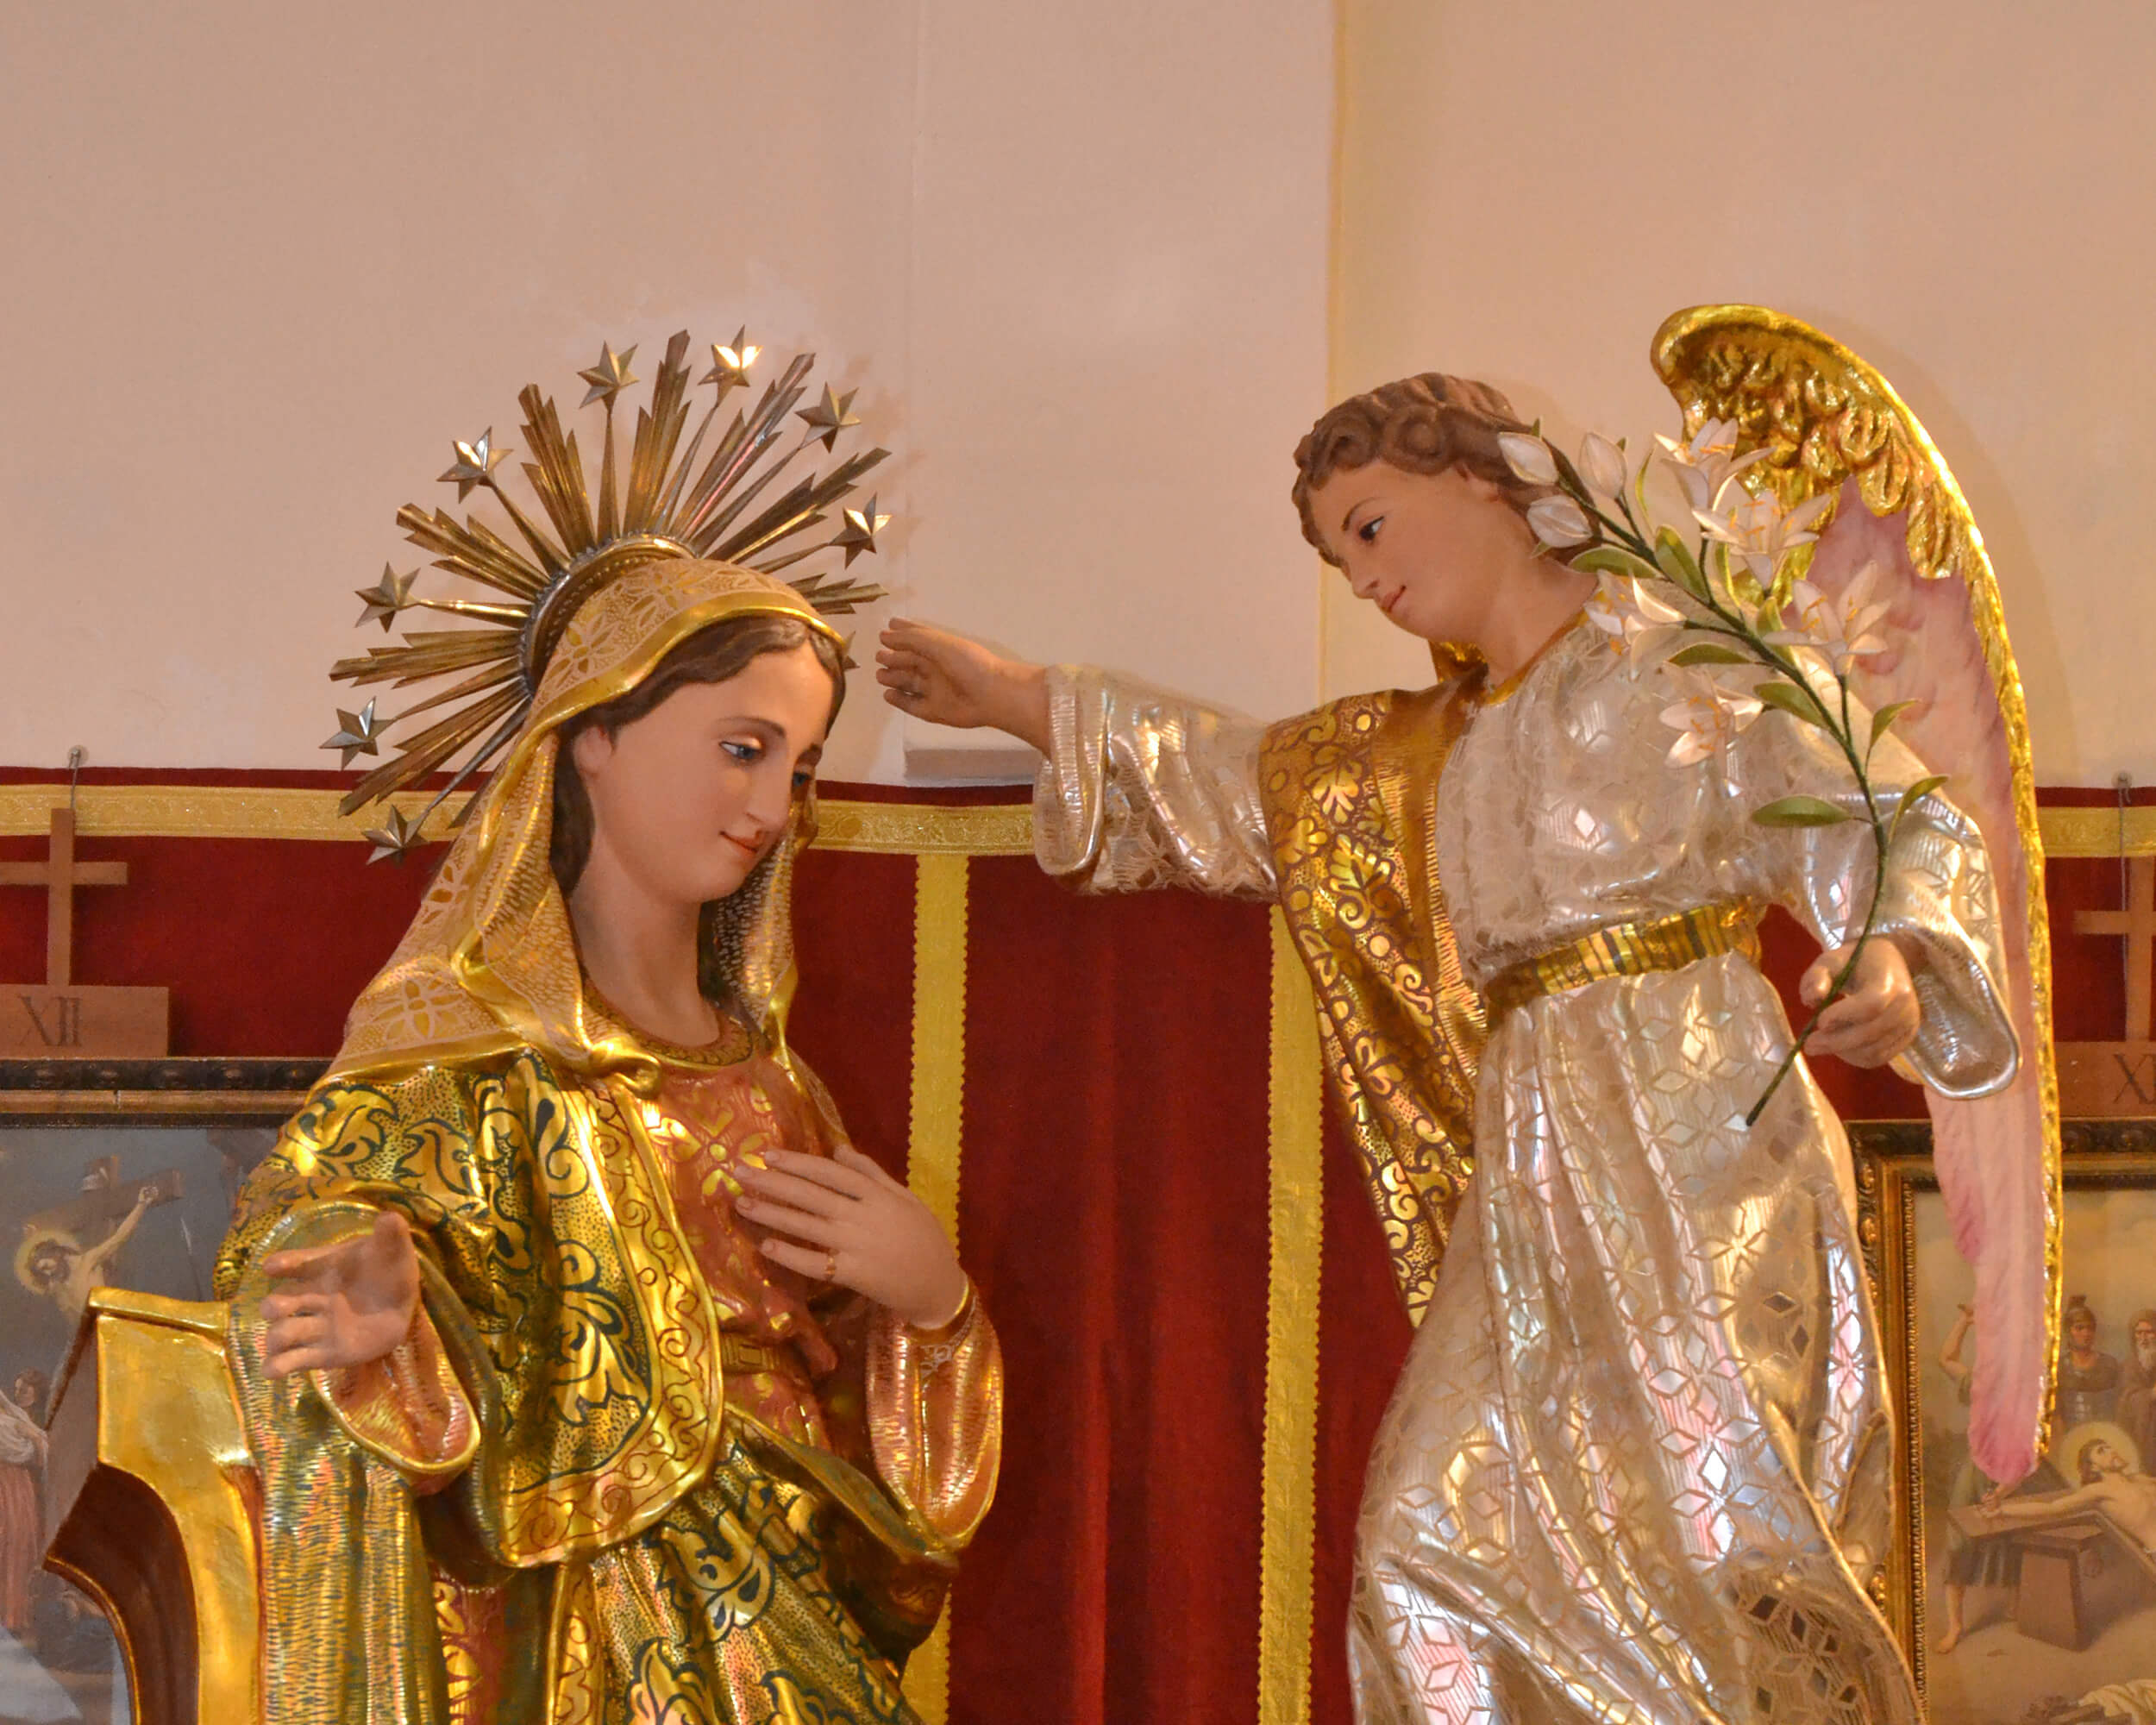 Annunciation of Our Lady